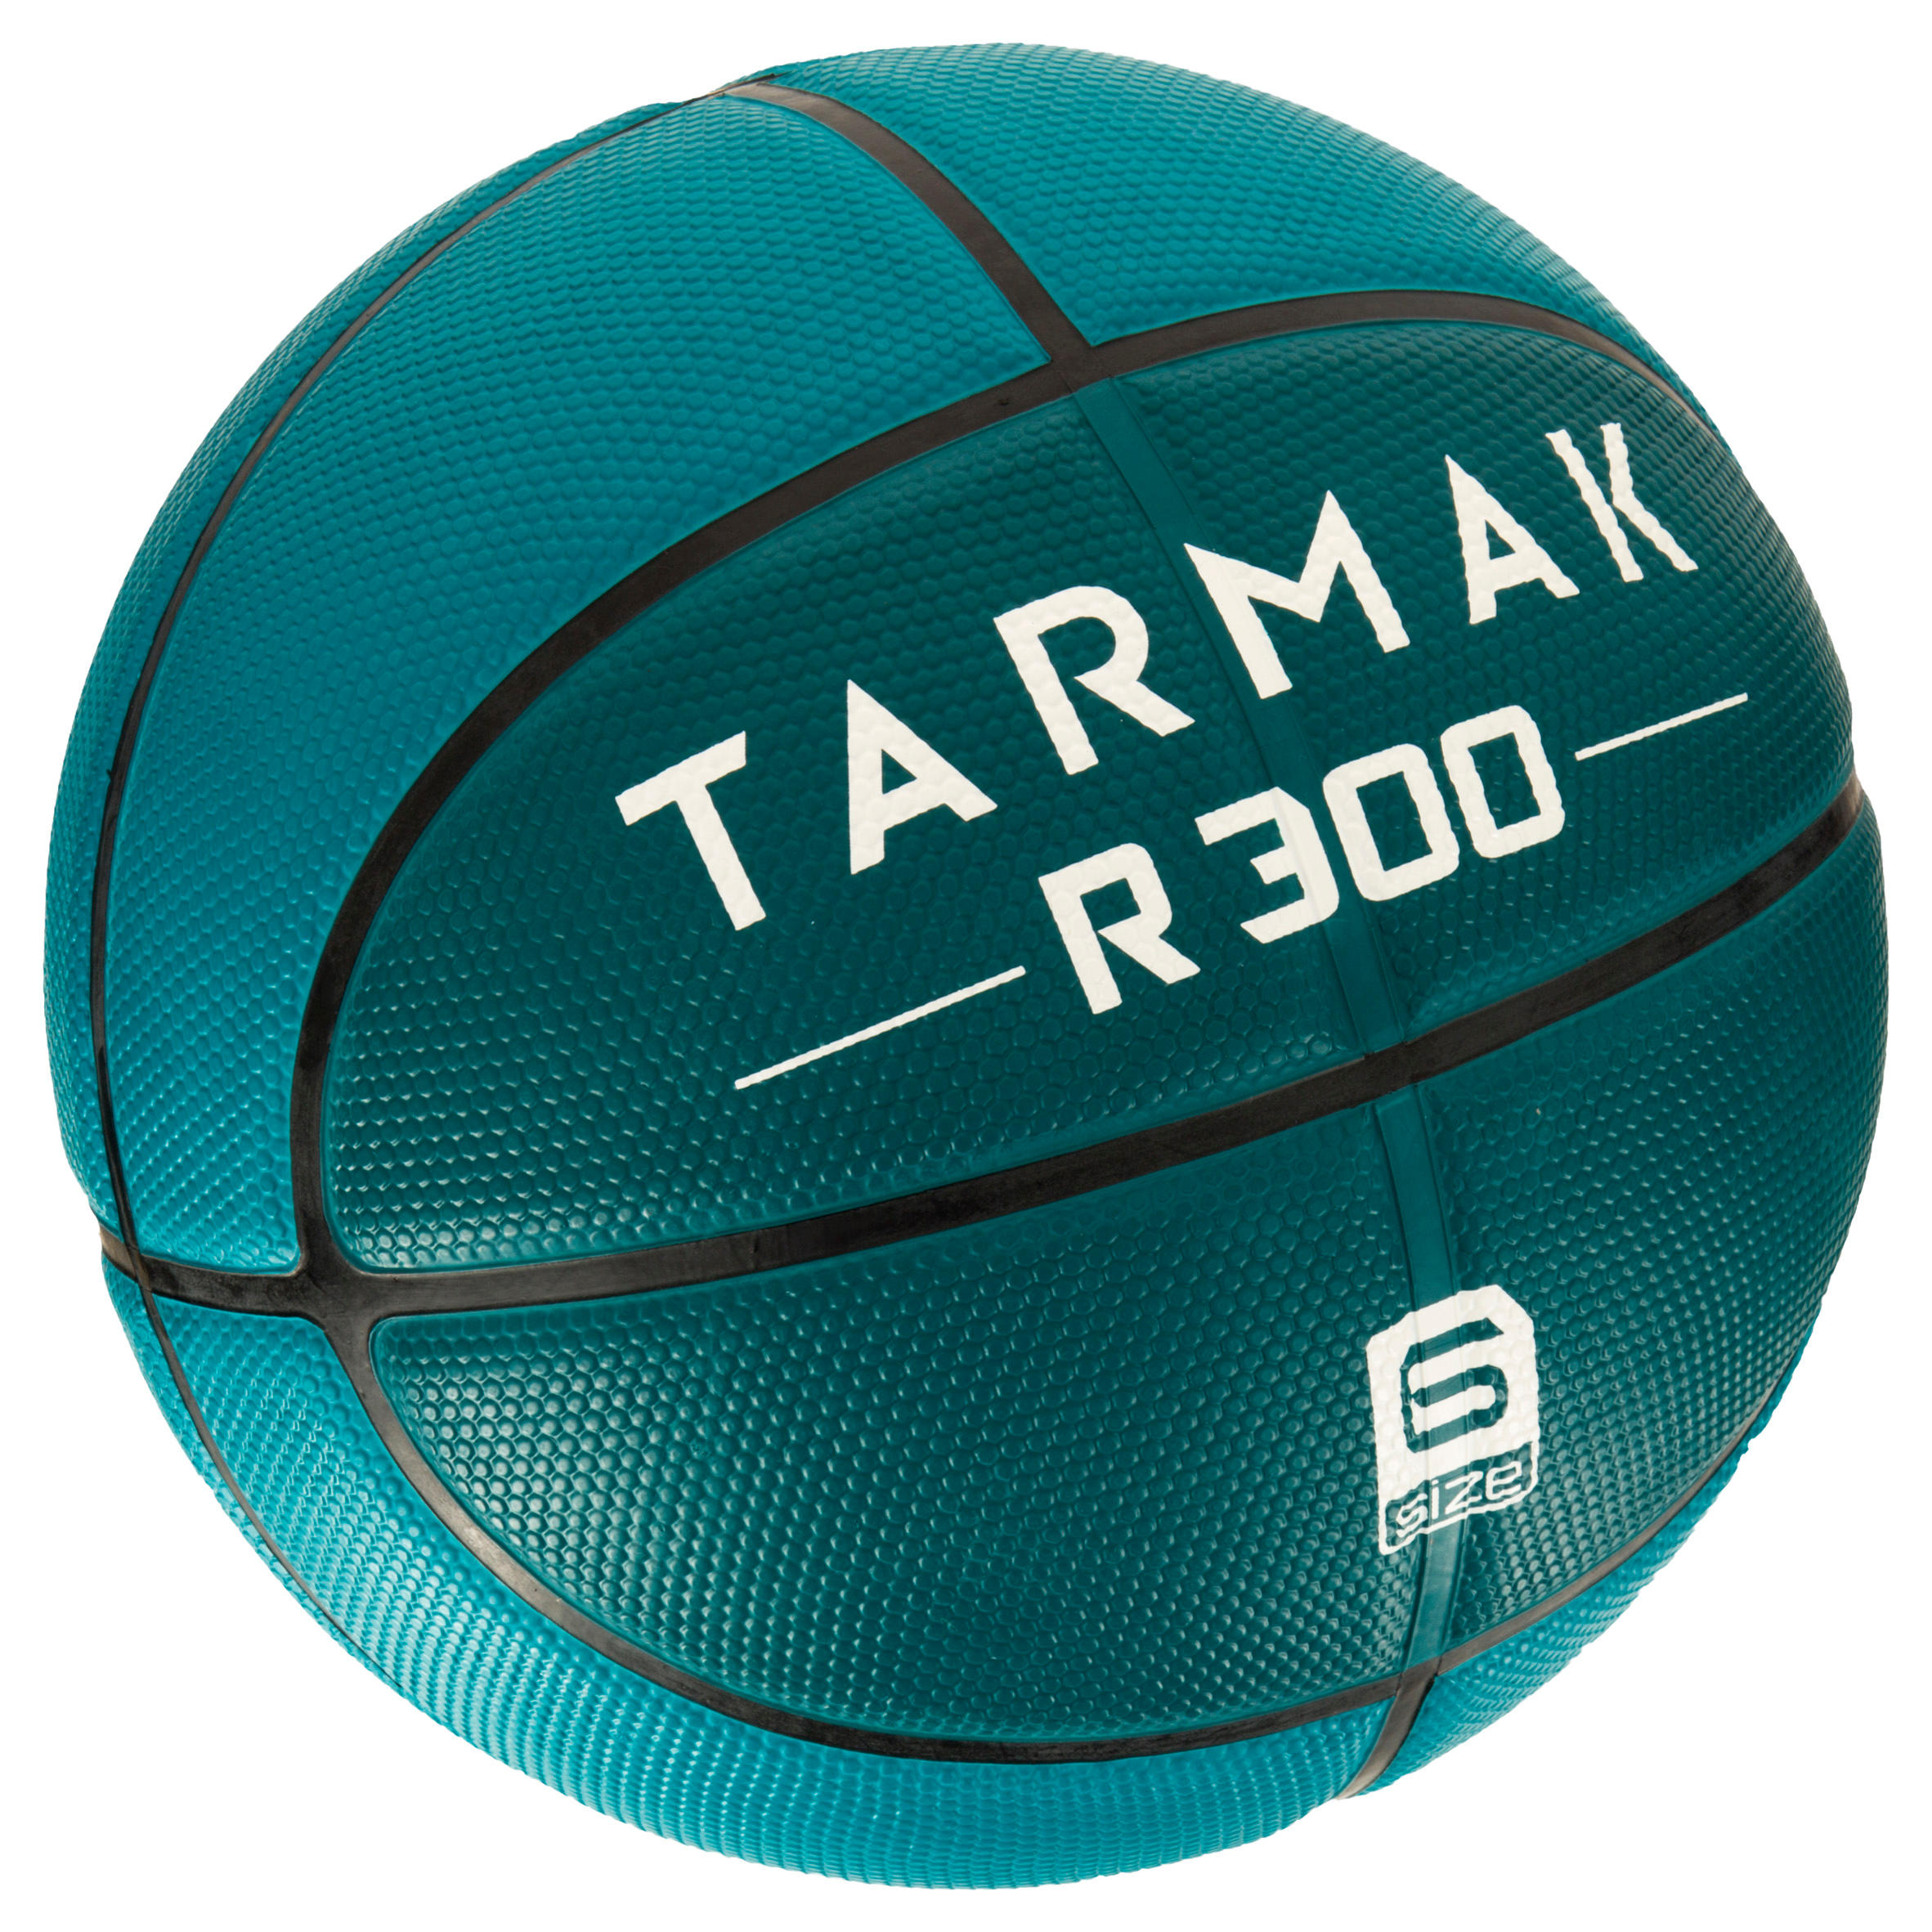 R300 Size 6 Basketball - Green. Durable.